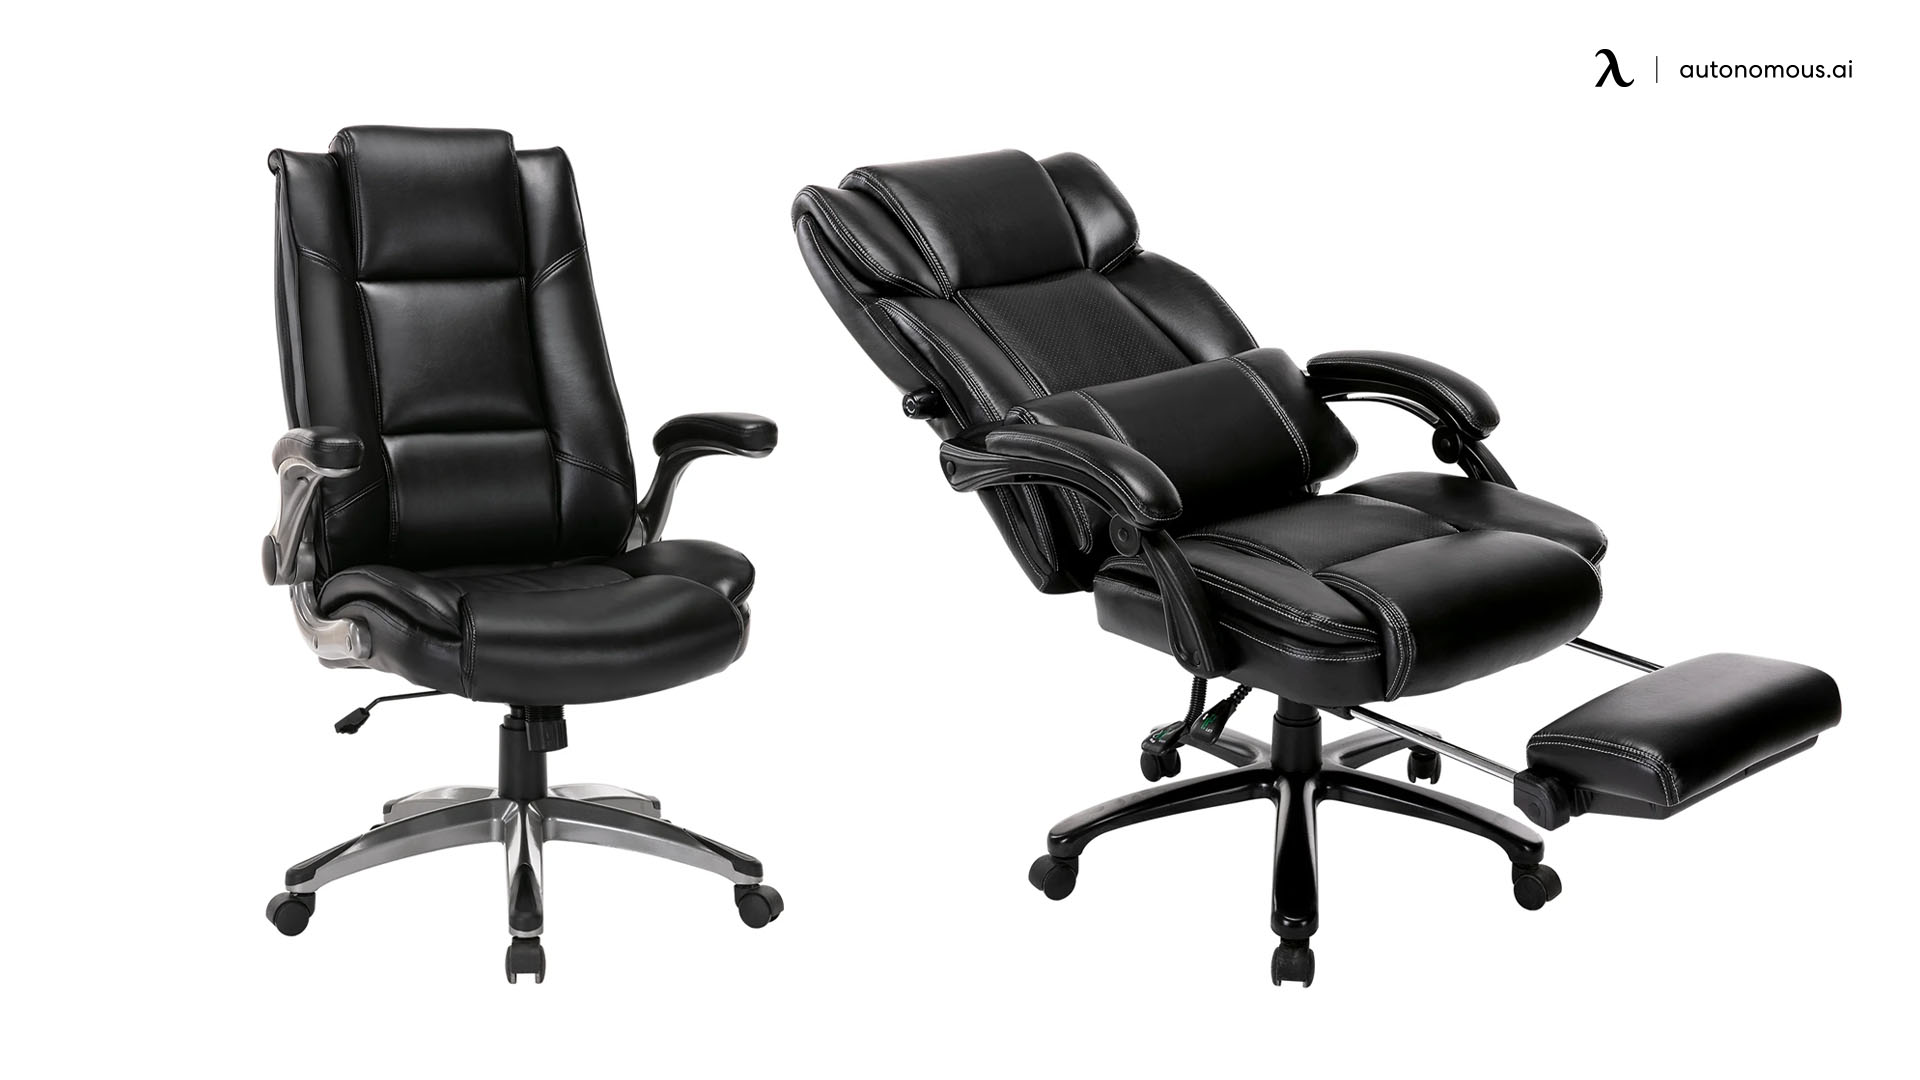 Leather Executive Chair from STAR SPACE